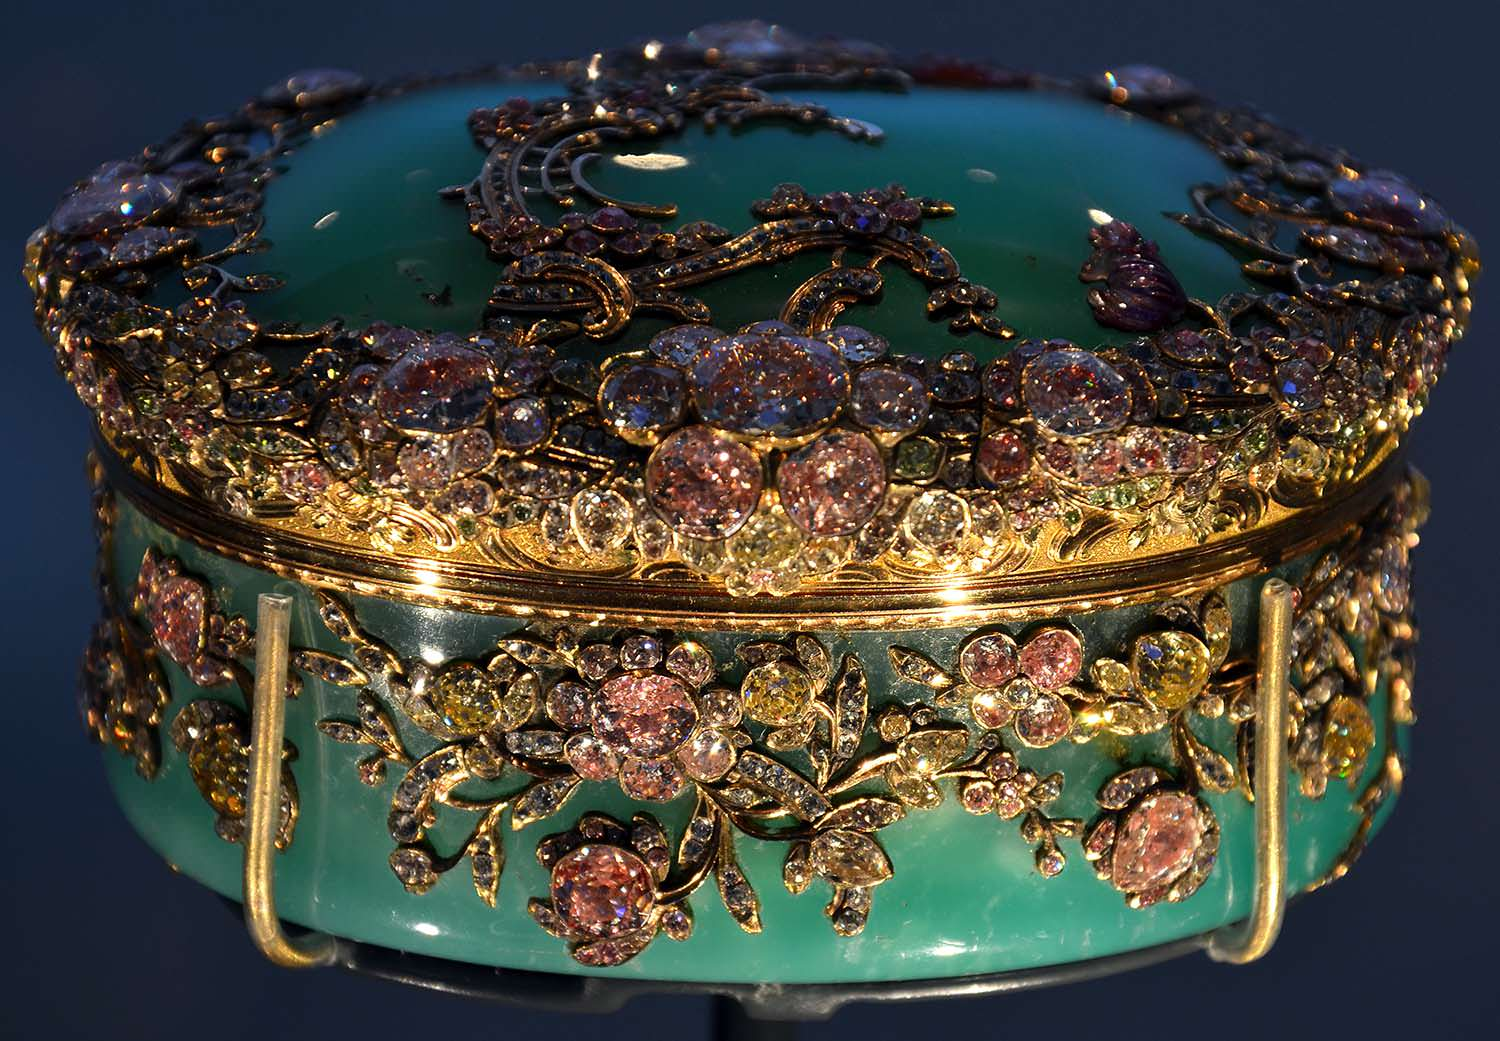 Chrysoprase snuffbox decorated with gold, gemstones and diamonds - made around 1765